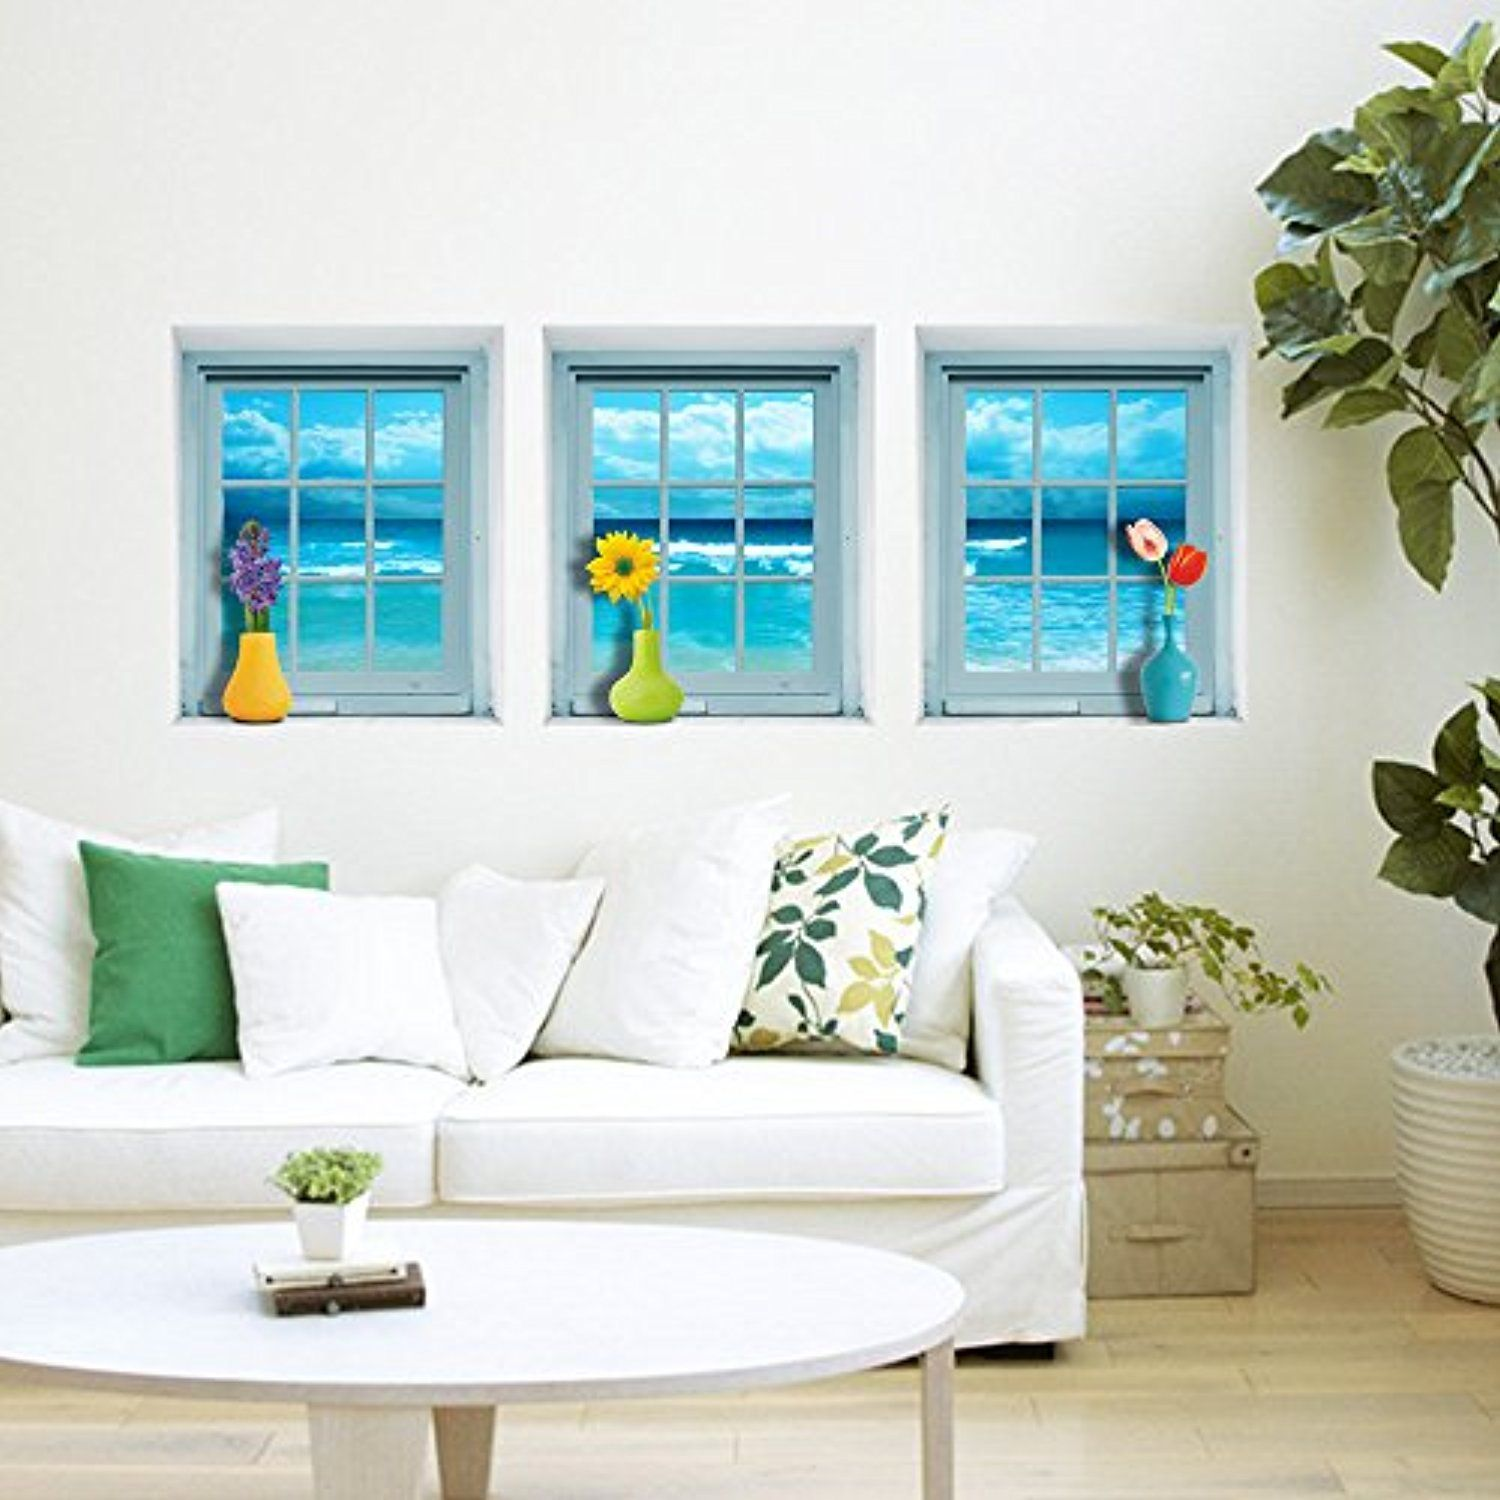 (Windows Picture) Stereo Wall Stickers Wallpaper Hd Self Adhesive Paper Background